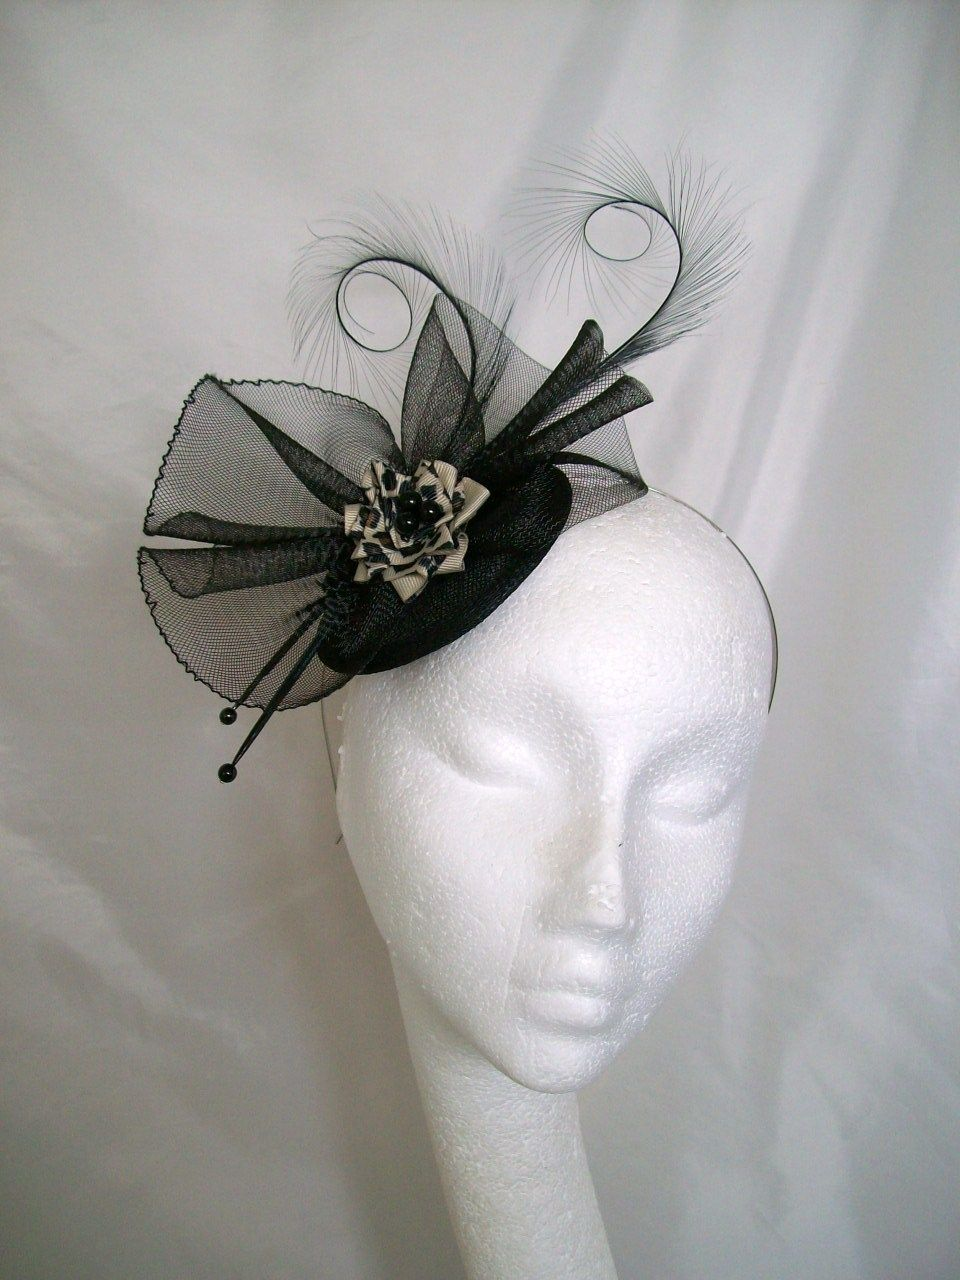 88484eb3a57a2 Black Matilda with Leopardprint Detail Fascinator Hat by Gothic Diva  Designs  Gothic  Steampunk Fabulous